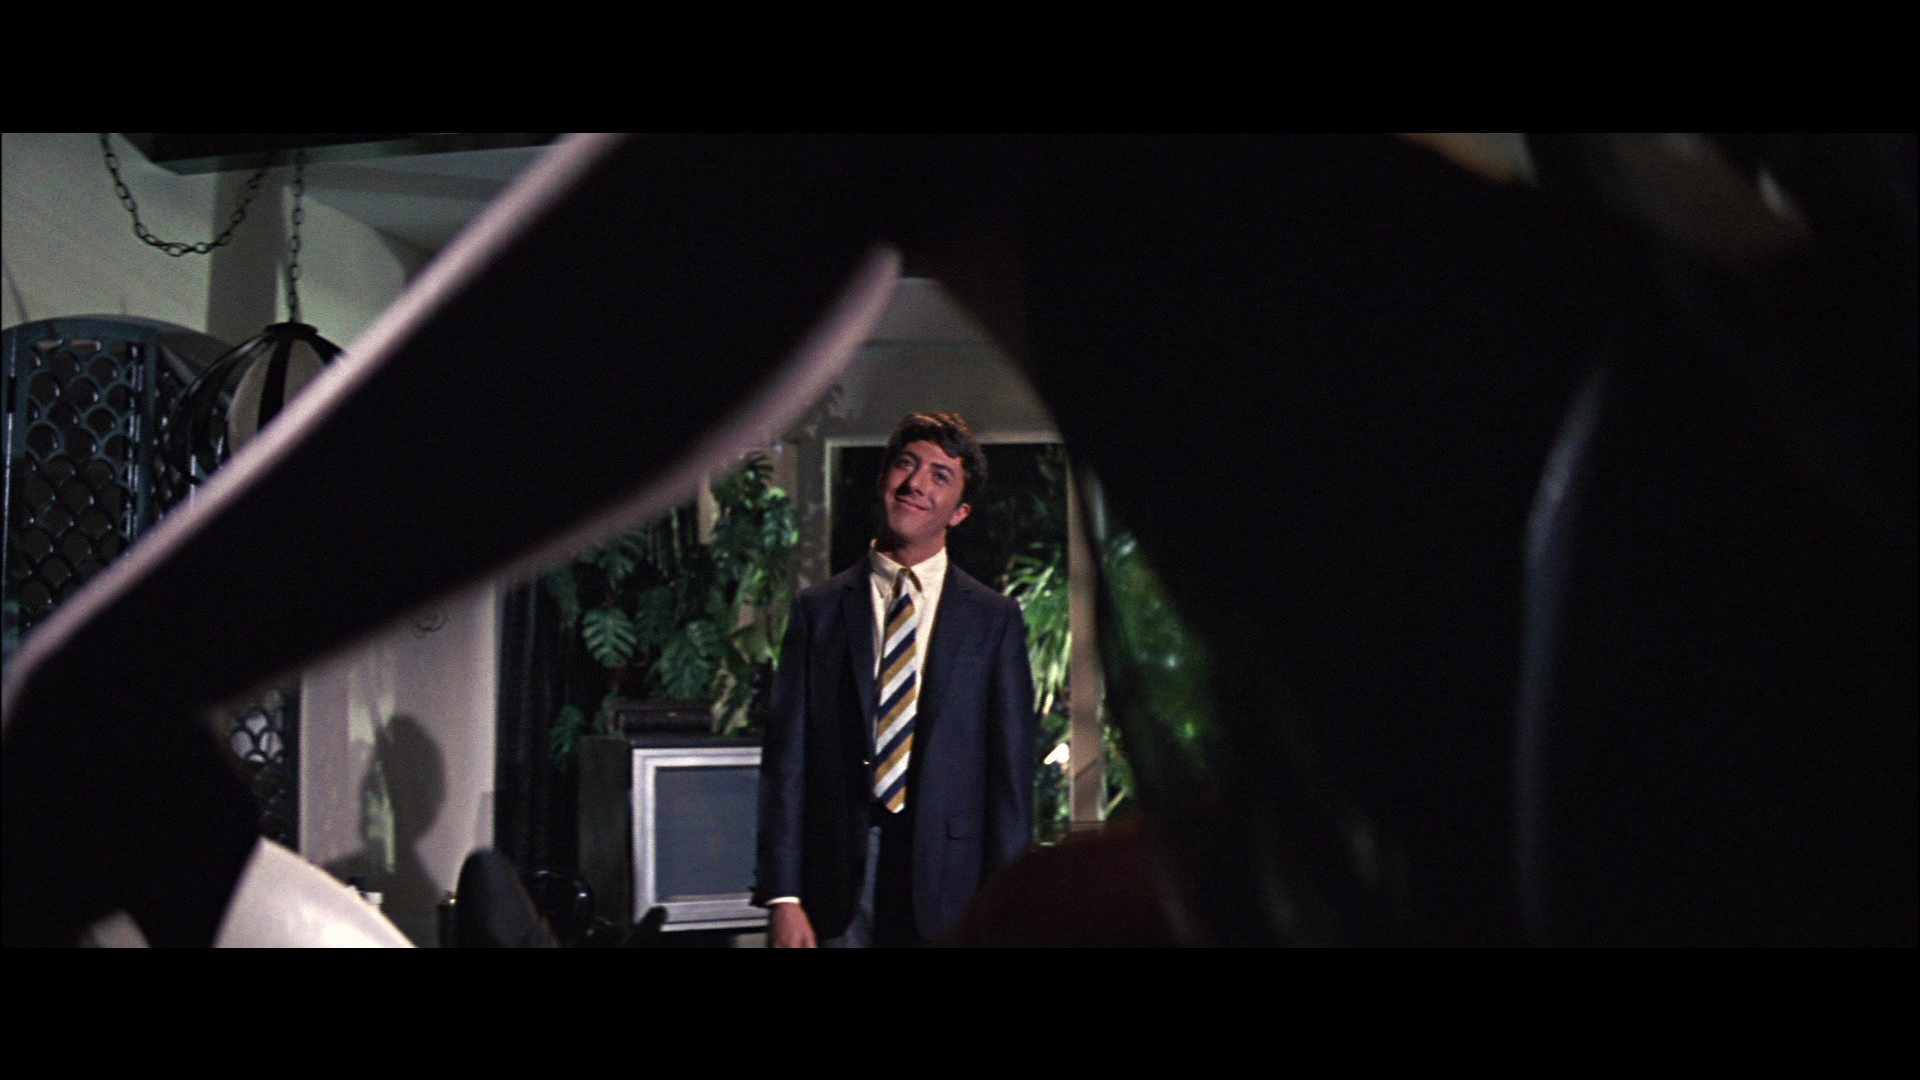 https://fogsmoviereviews.files.wordpress.com/2012/08/the_graduate_mrs_robinson_youre_trying_to_seduce_me.png